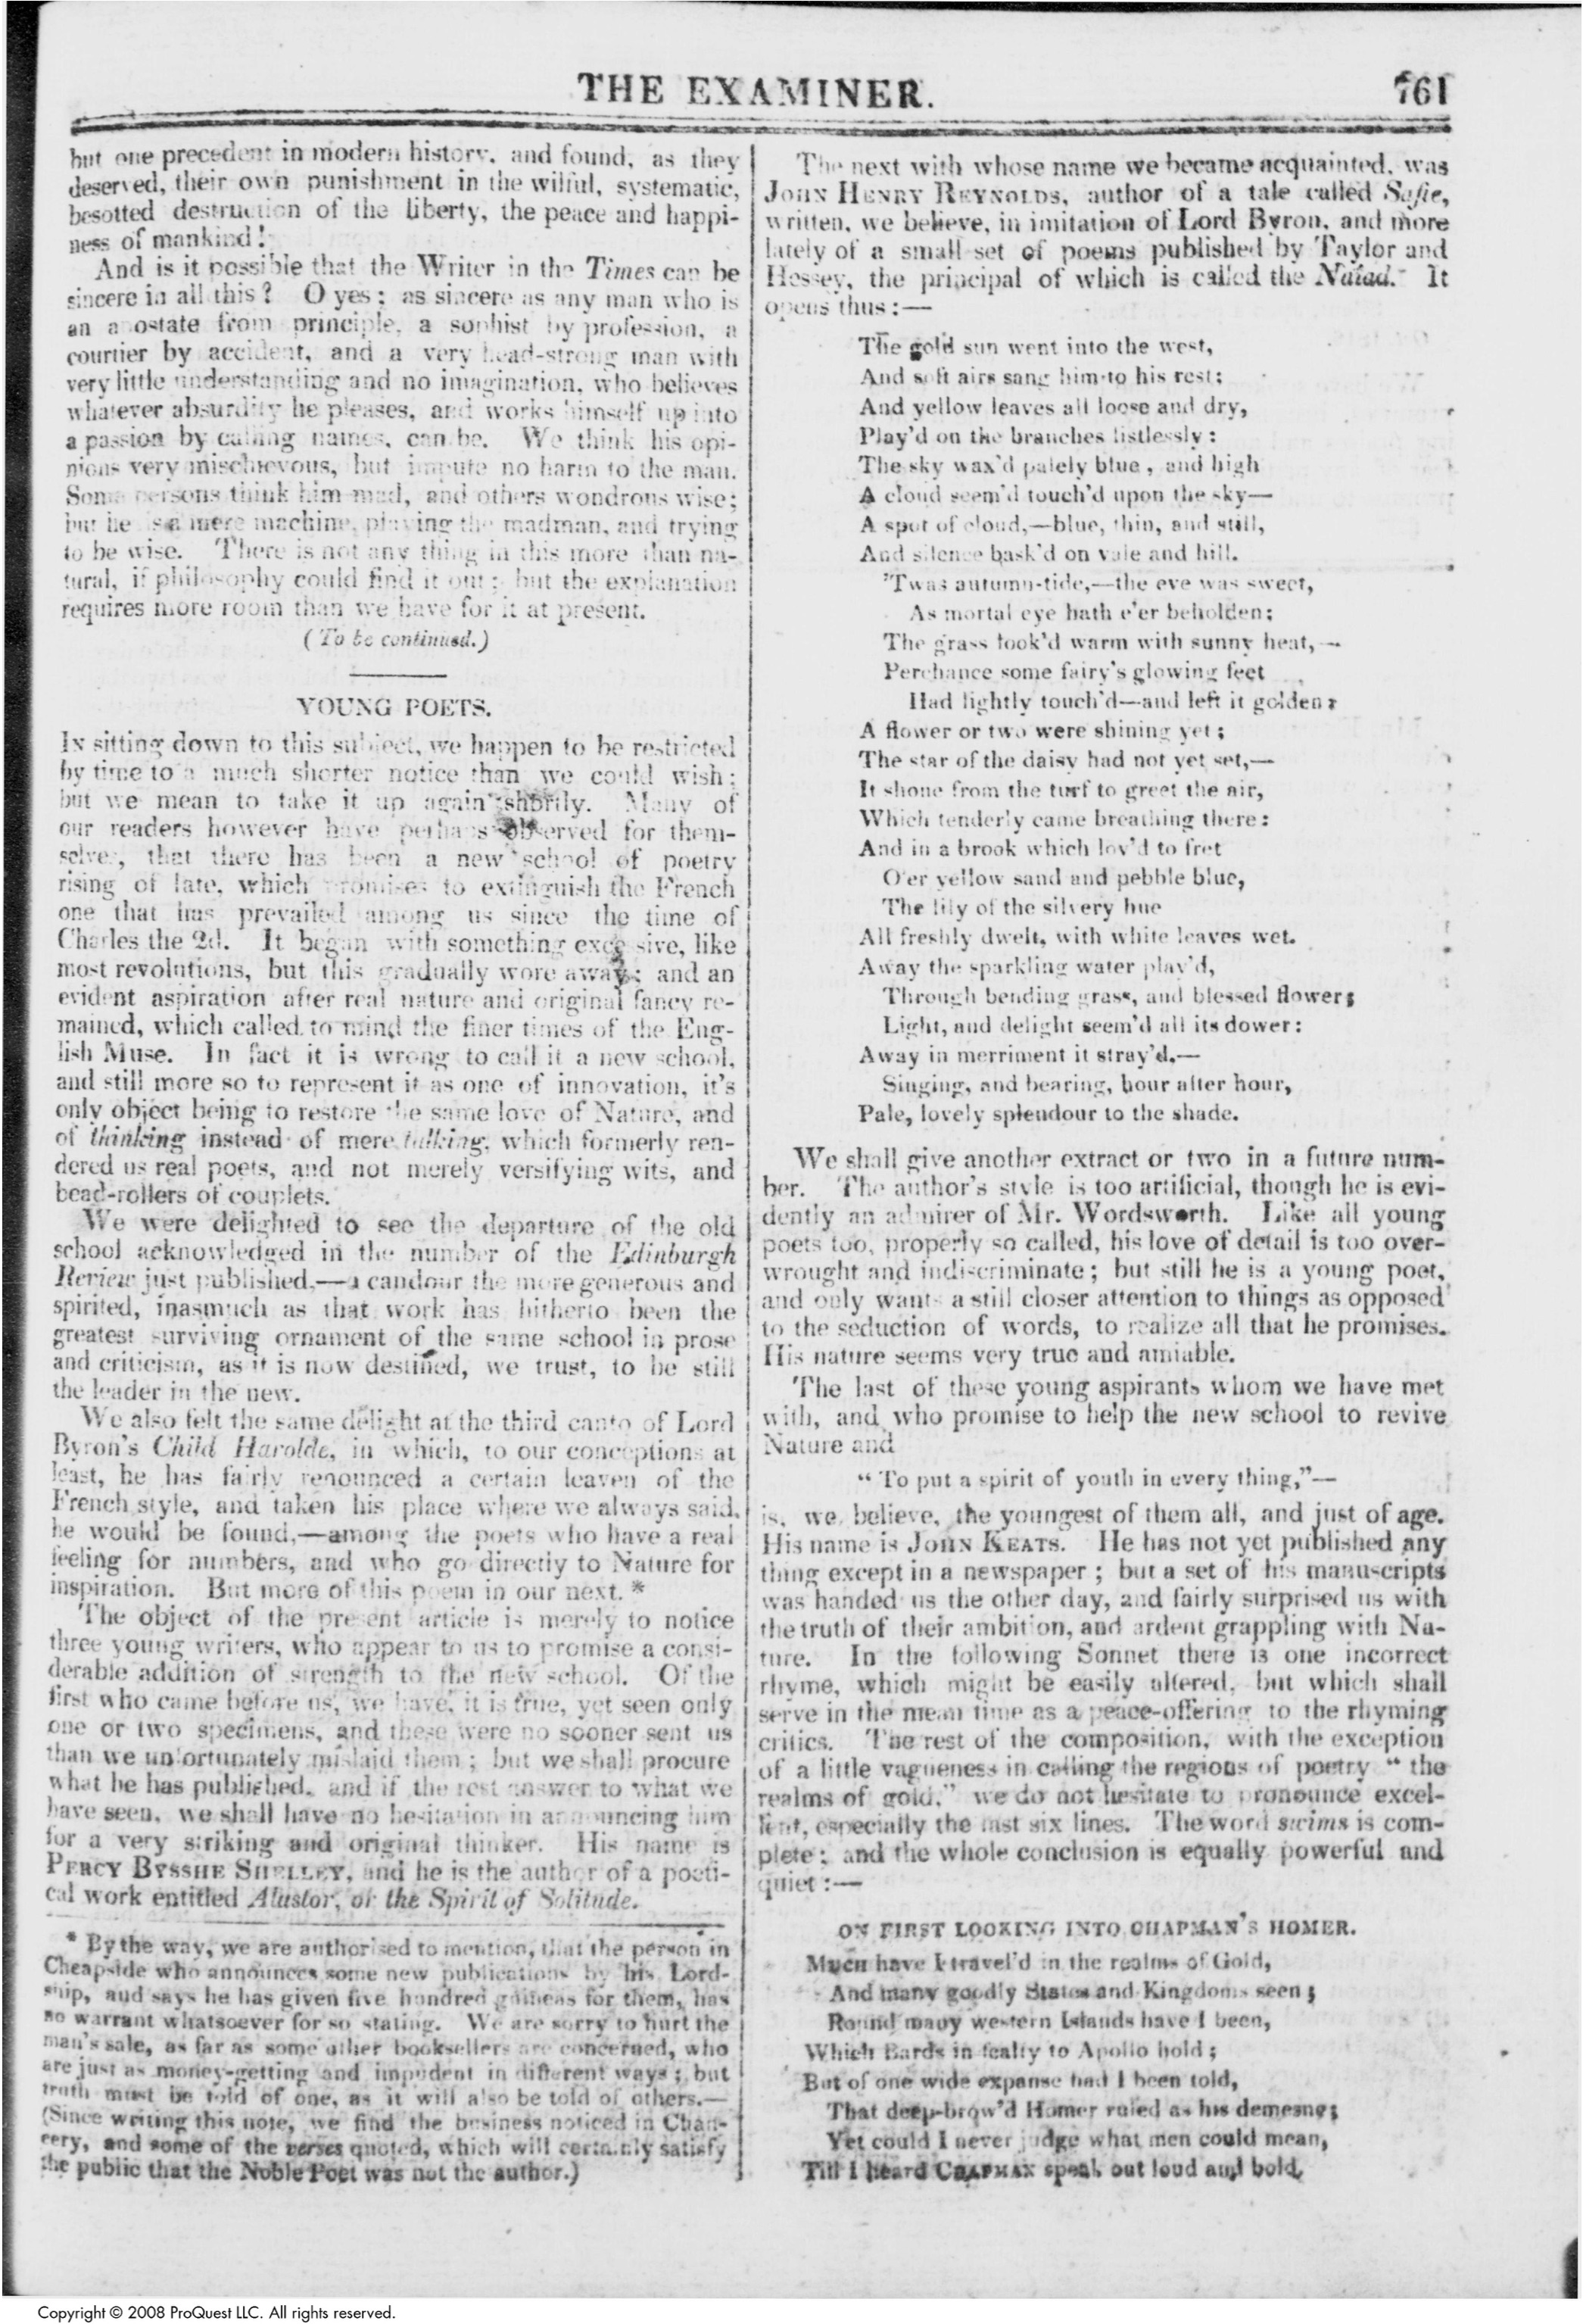 "leigh hunt s young poets essay dec the keats letters  page 1 of ""young poets "" by leigh hunt from the examiner 1 dec 1816 courtesy british periodicals database click image for full size"